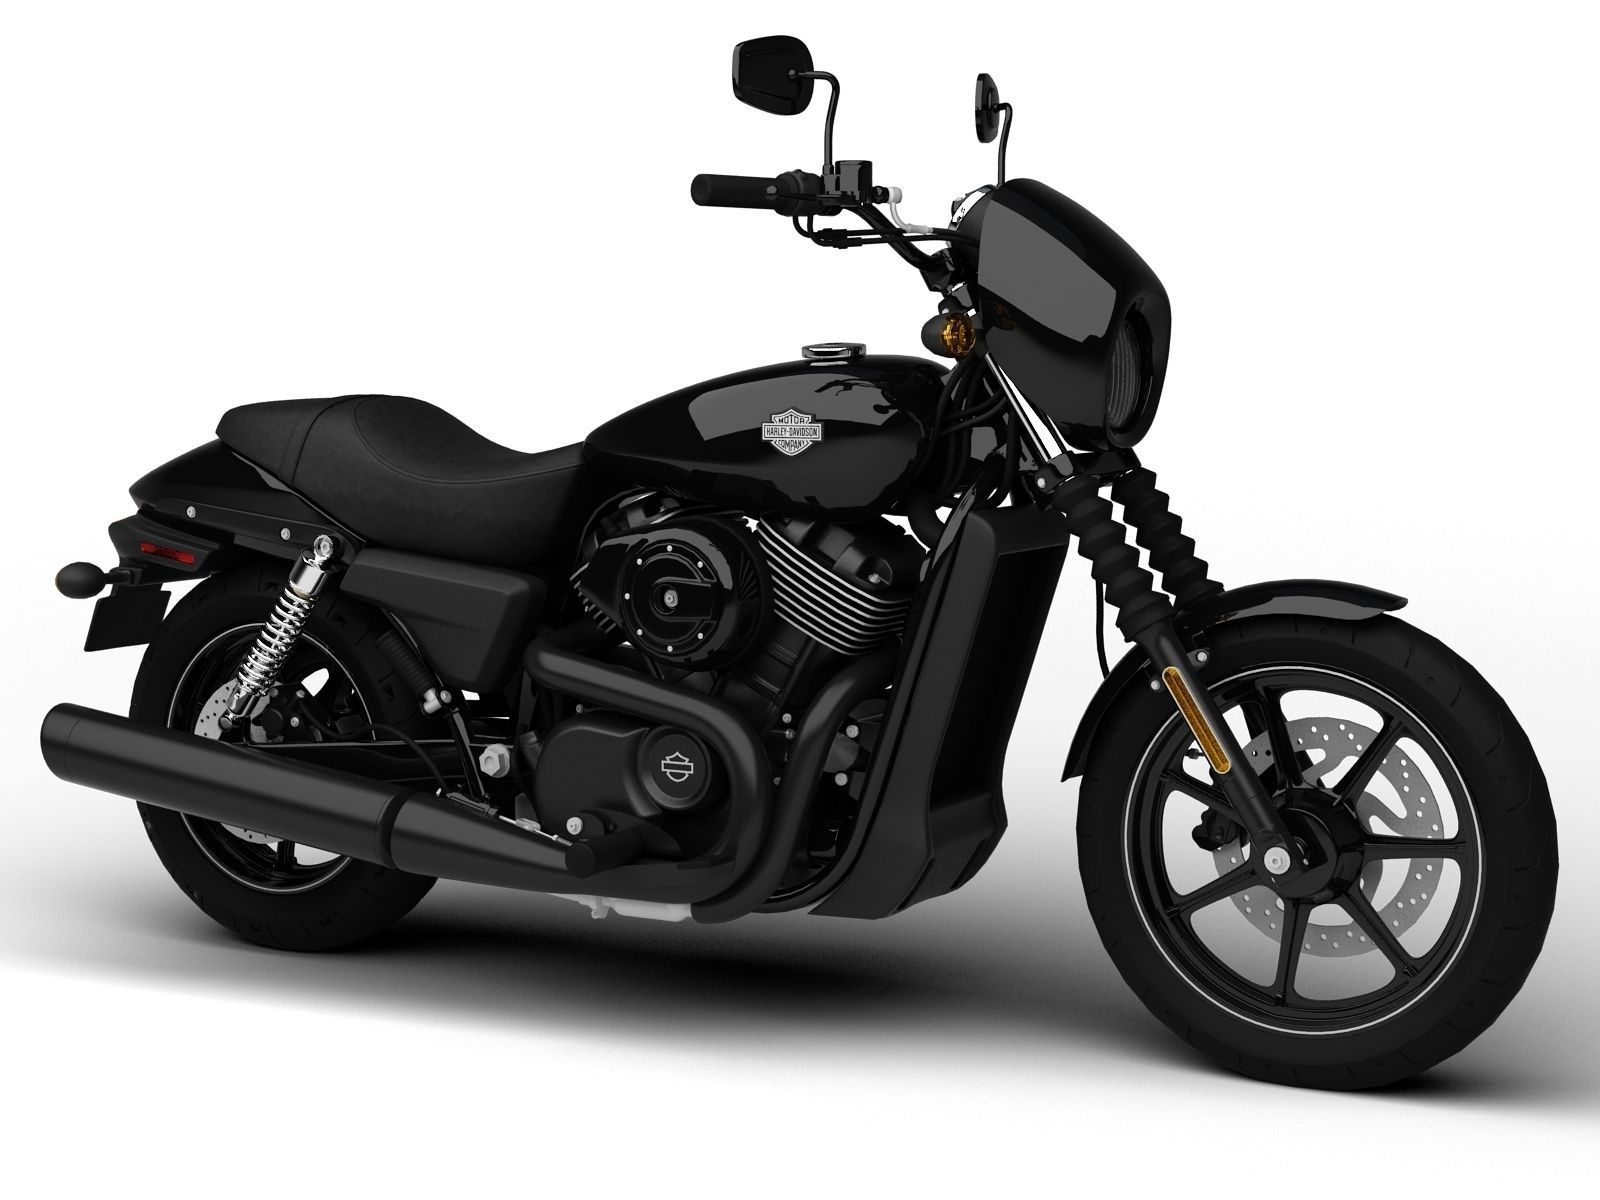 harley davidson street 750 2015 3d model max 3ds fbx. Black Bedroom Furniture Sets. Home Design Ideas